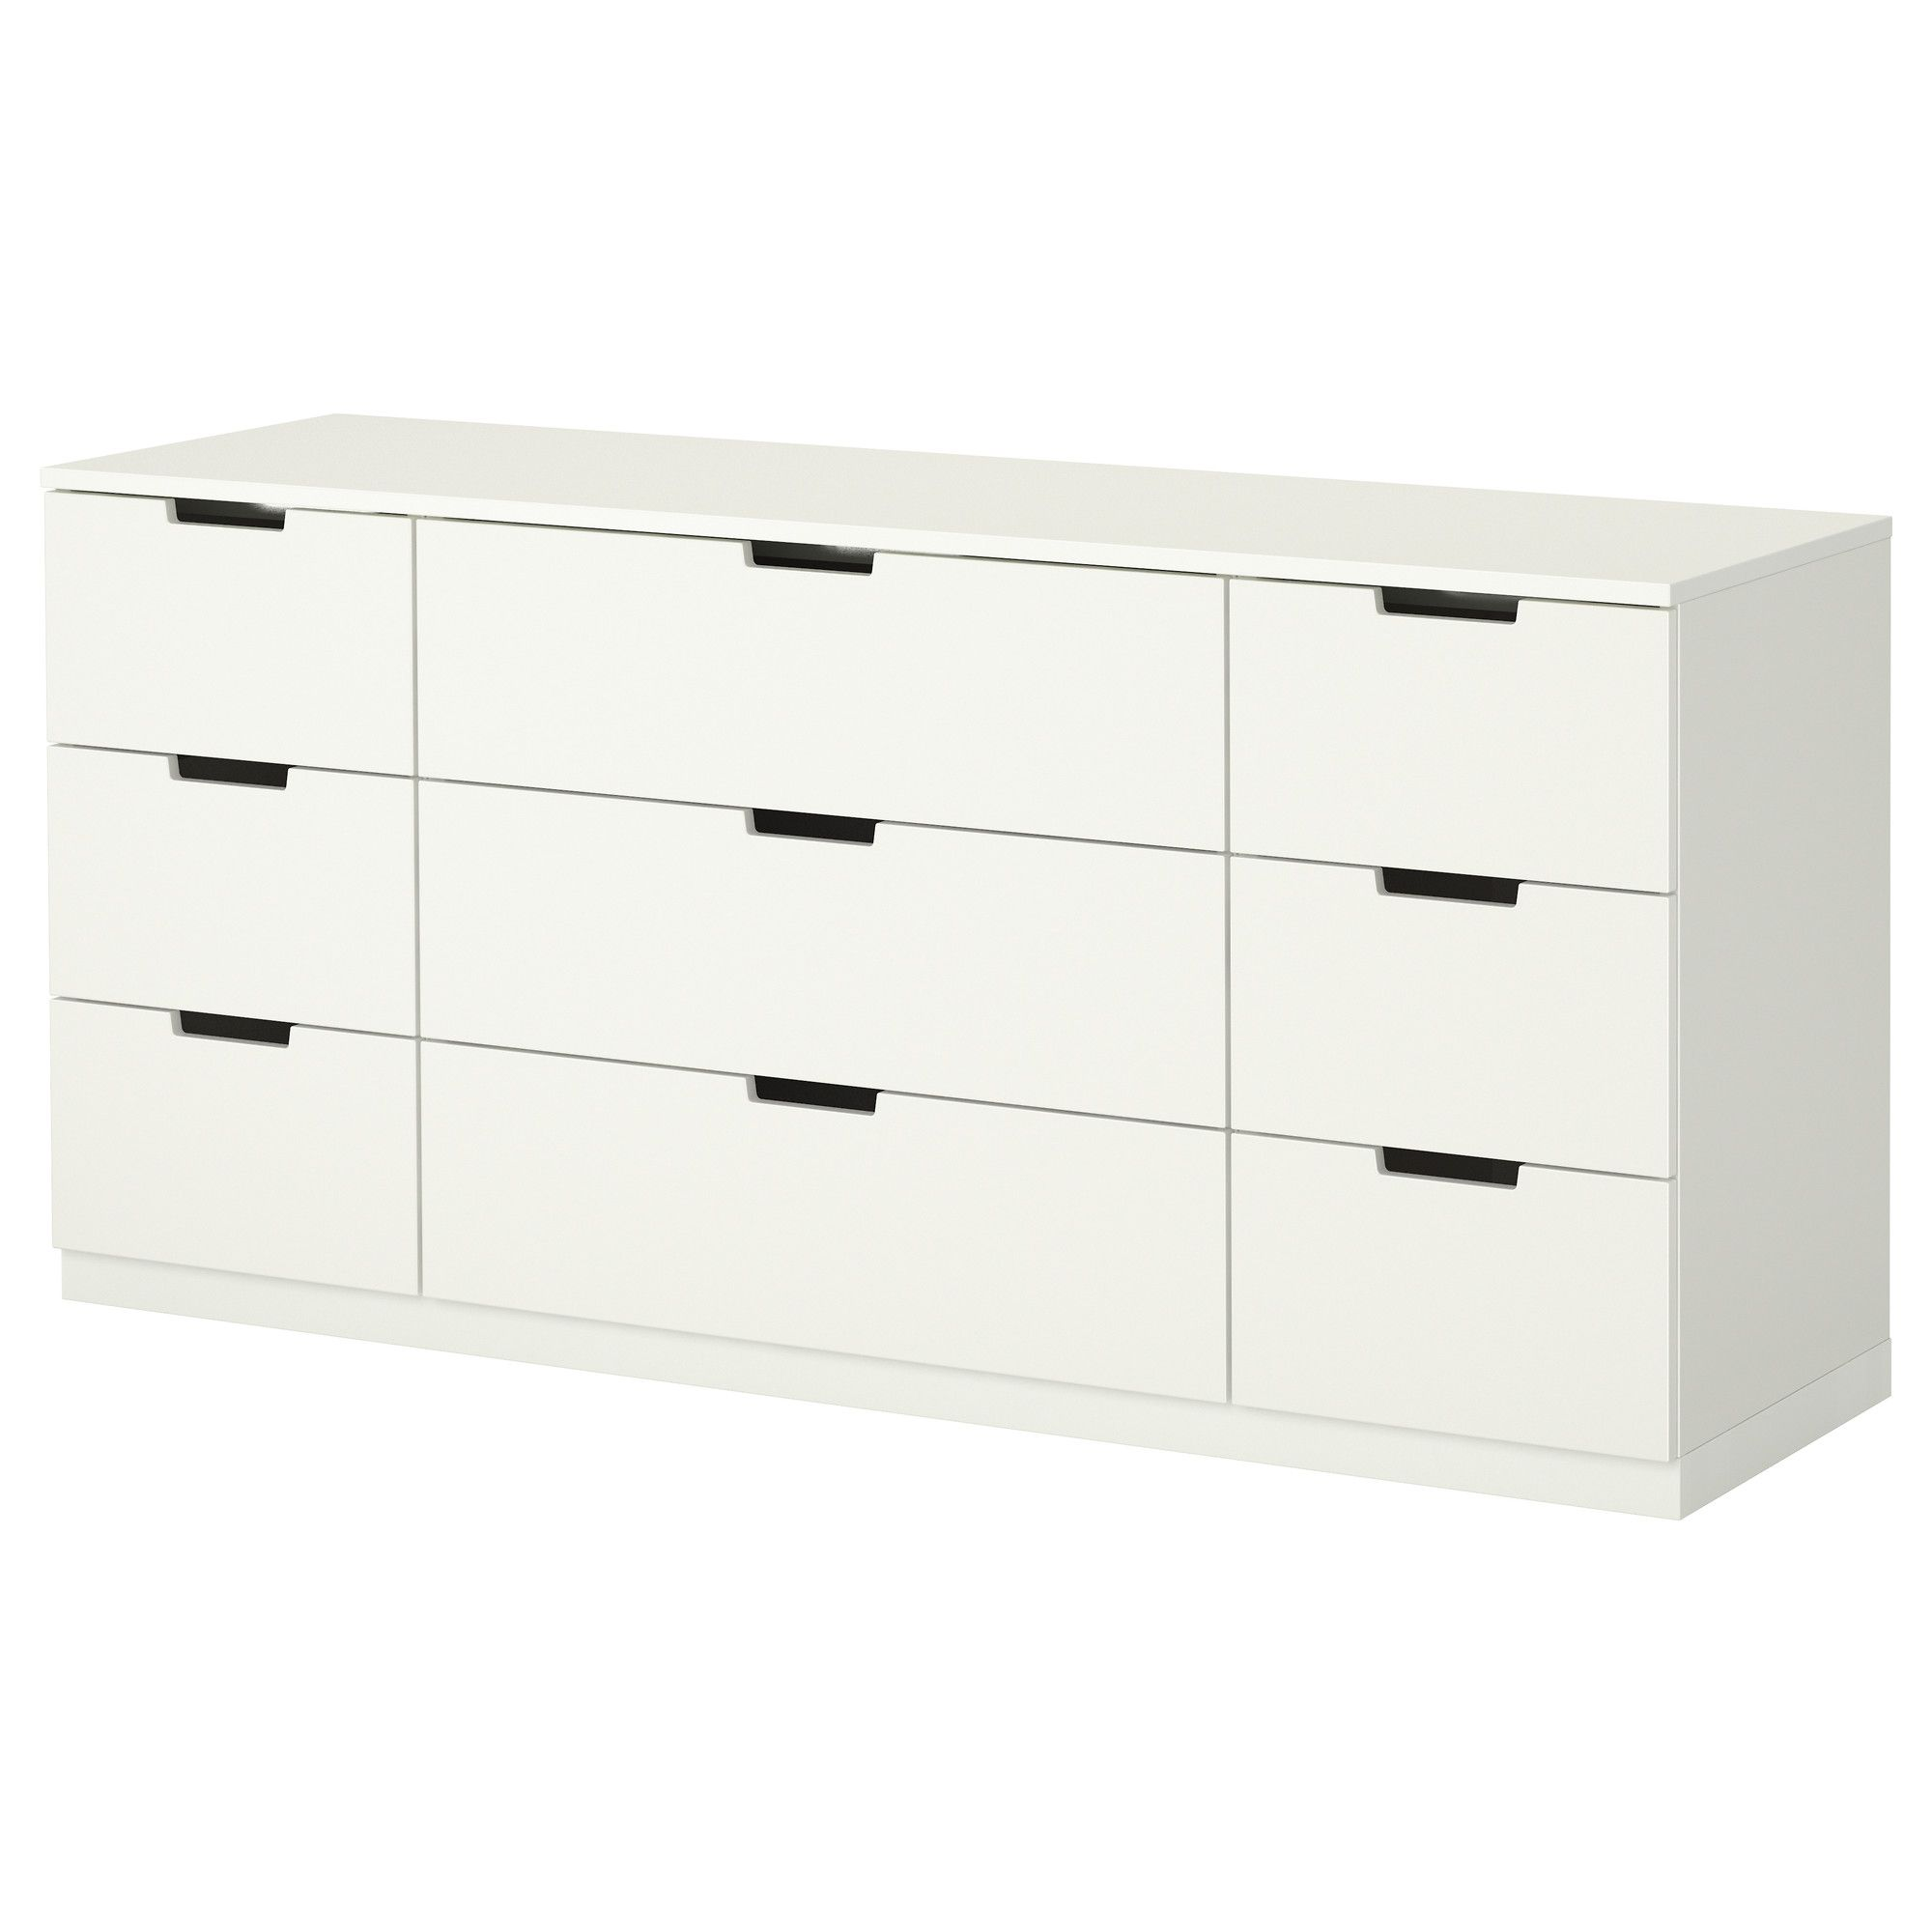 Nordli chest with 9 drawers ikea 309 apartment Ikea nordli storage bed review